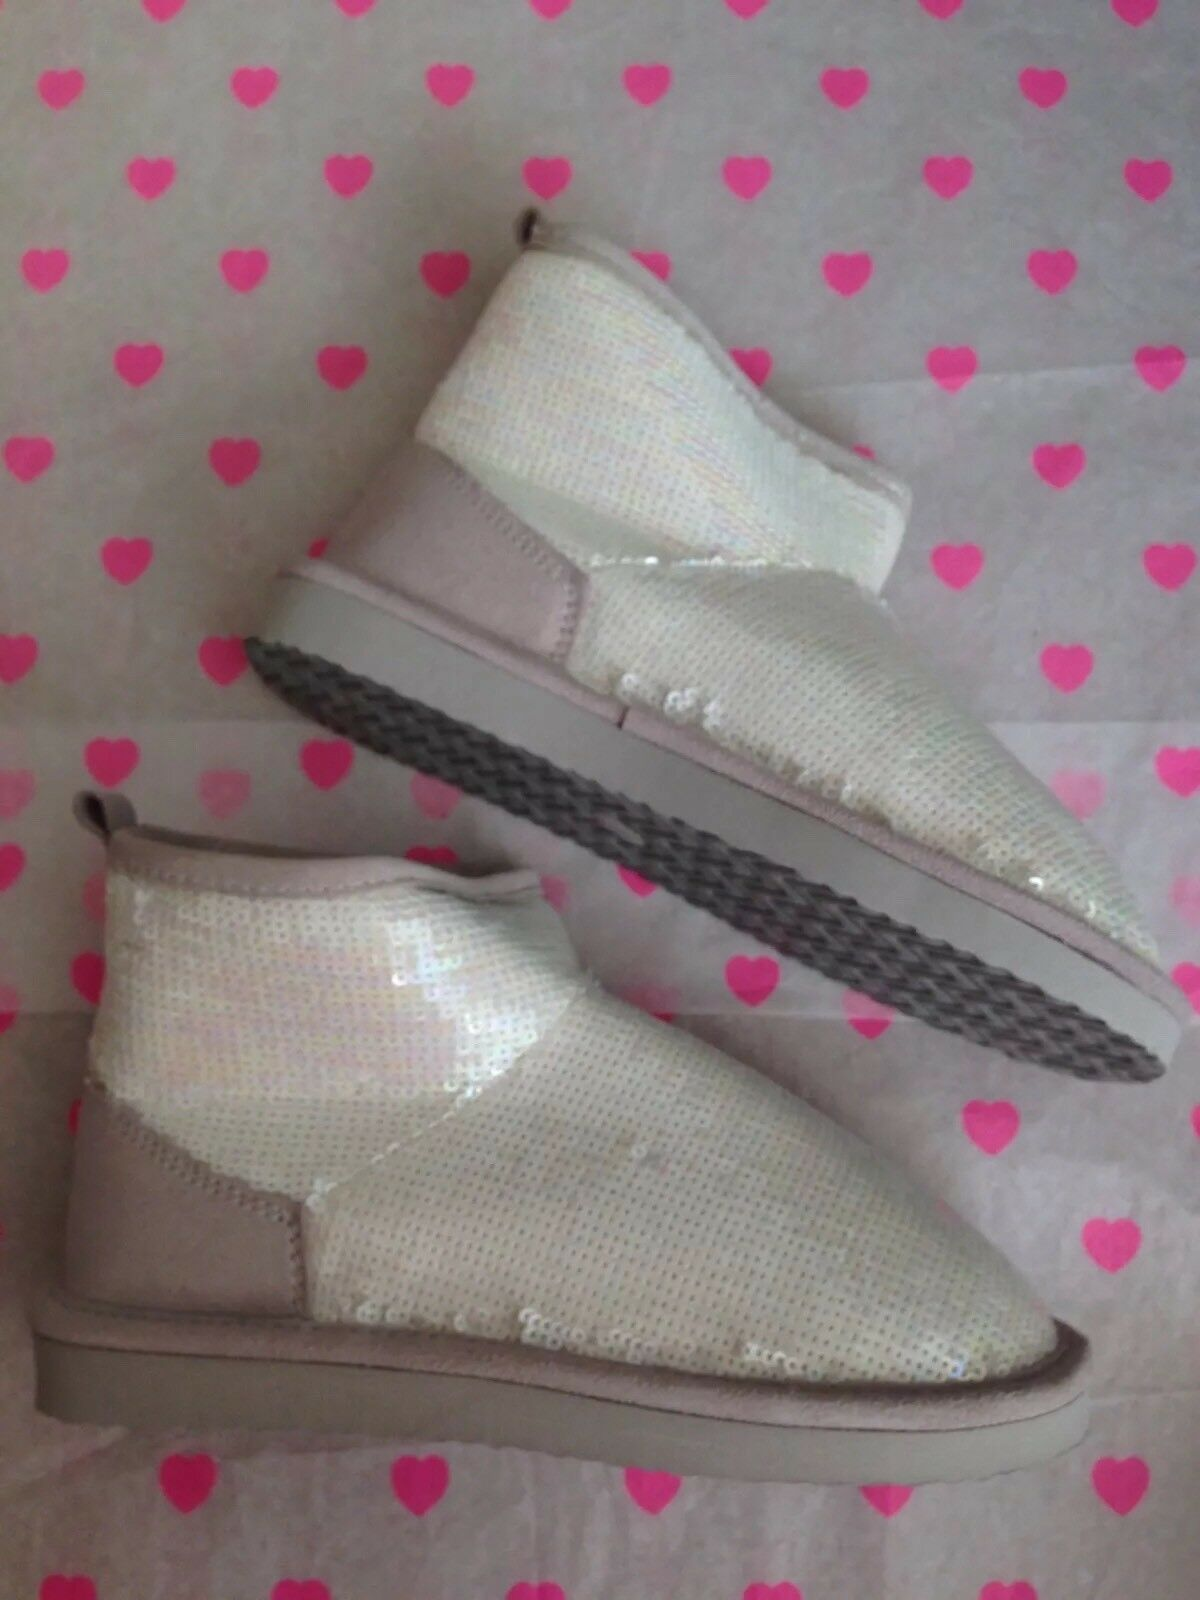 NWT  Victoria's Secret Pink Bling Sequin Fur Lined Slipper Booties Size S US 5-6